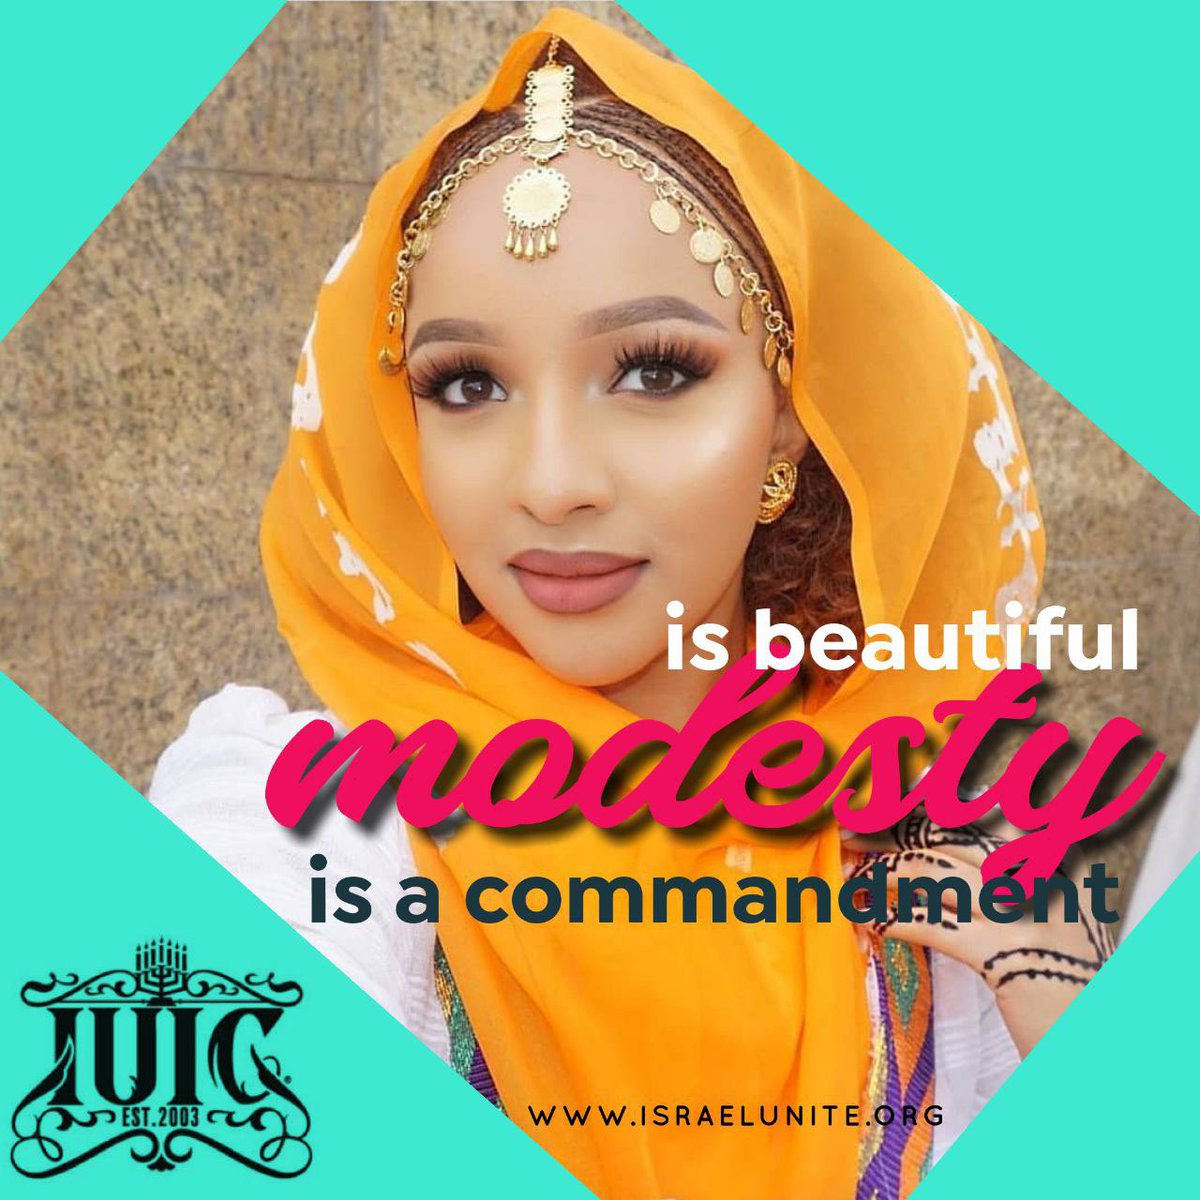 Let your modesty shine!!!   1 Timothy 2:9 [9]In like manner also, that women adorn themselves in modest apparel, with shamefacedness and sobriety; not with broided hair, or gold, or pearls, or costly array;  #Beautiful #Modesty #ModestApparel #Shamefaced #KeeptheCommandmentspic.twitter.com/IdMe5IRvEj